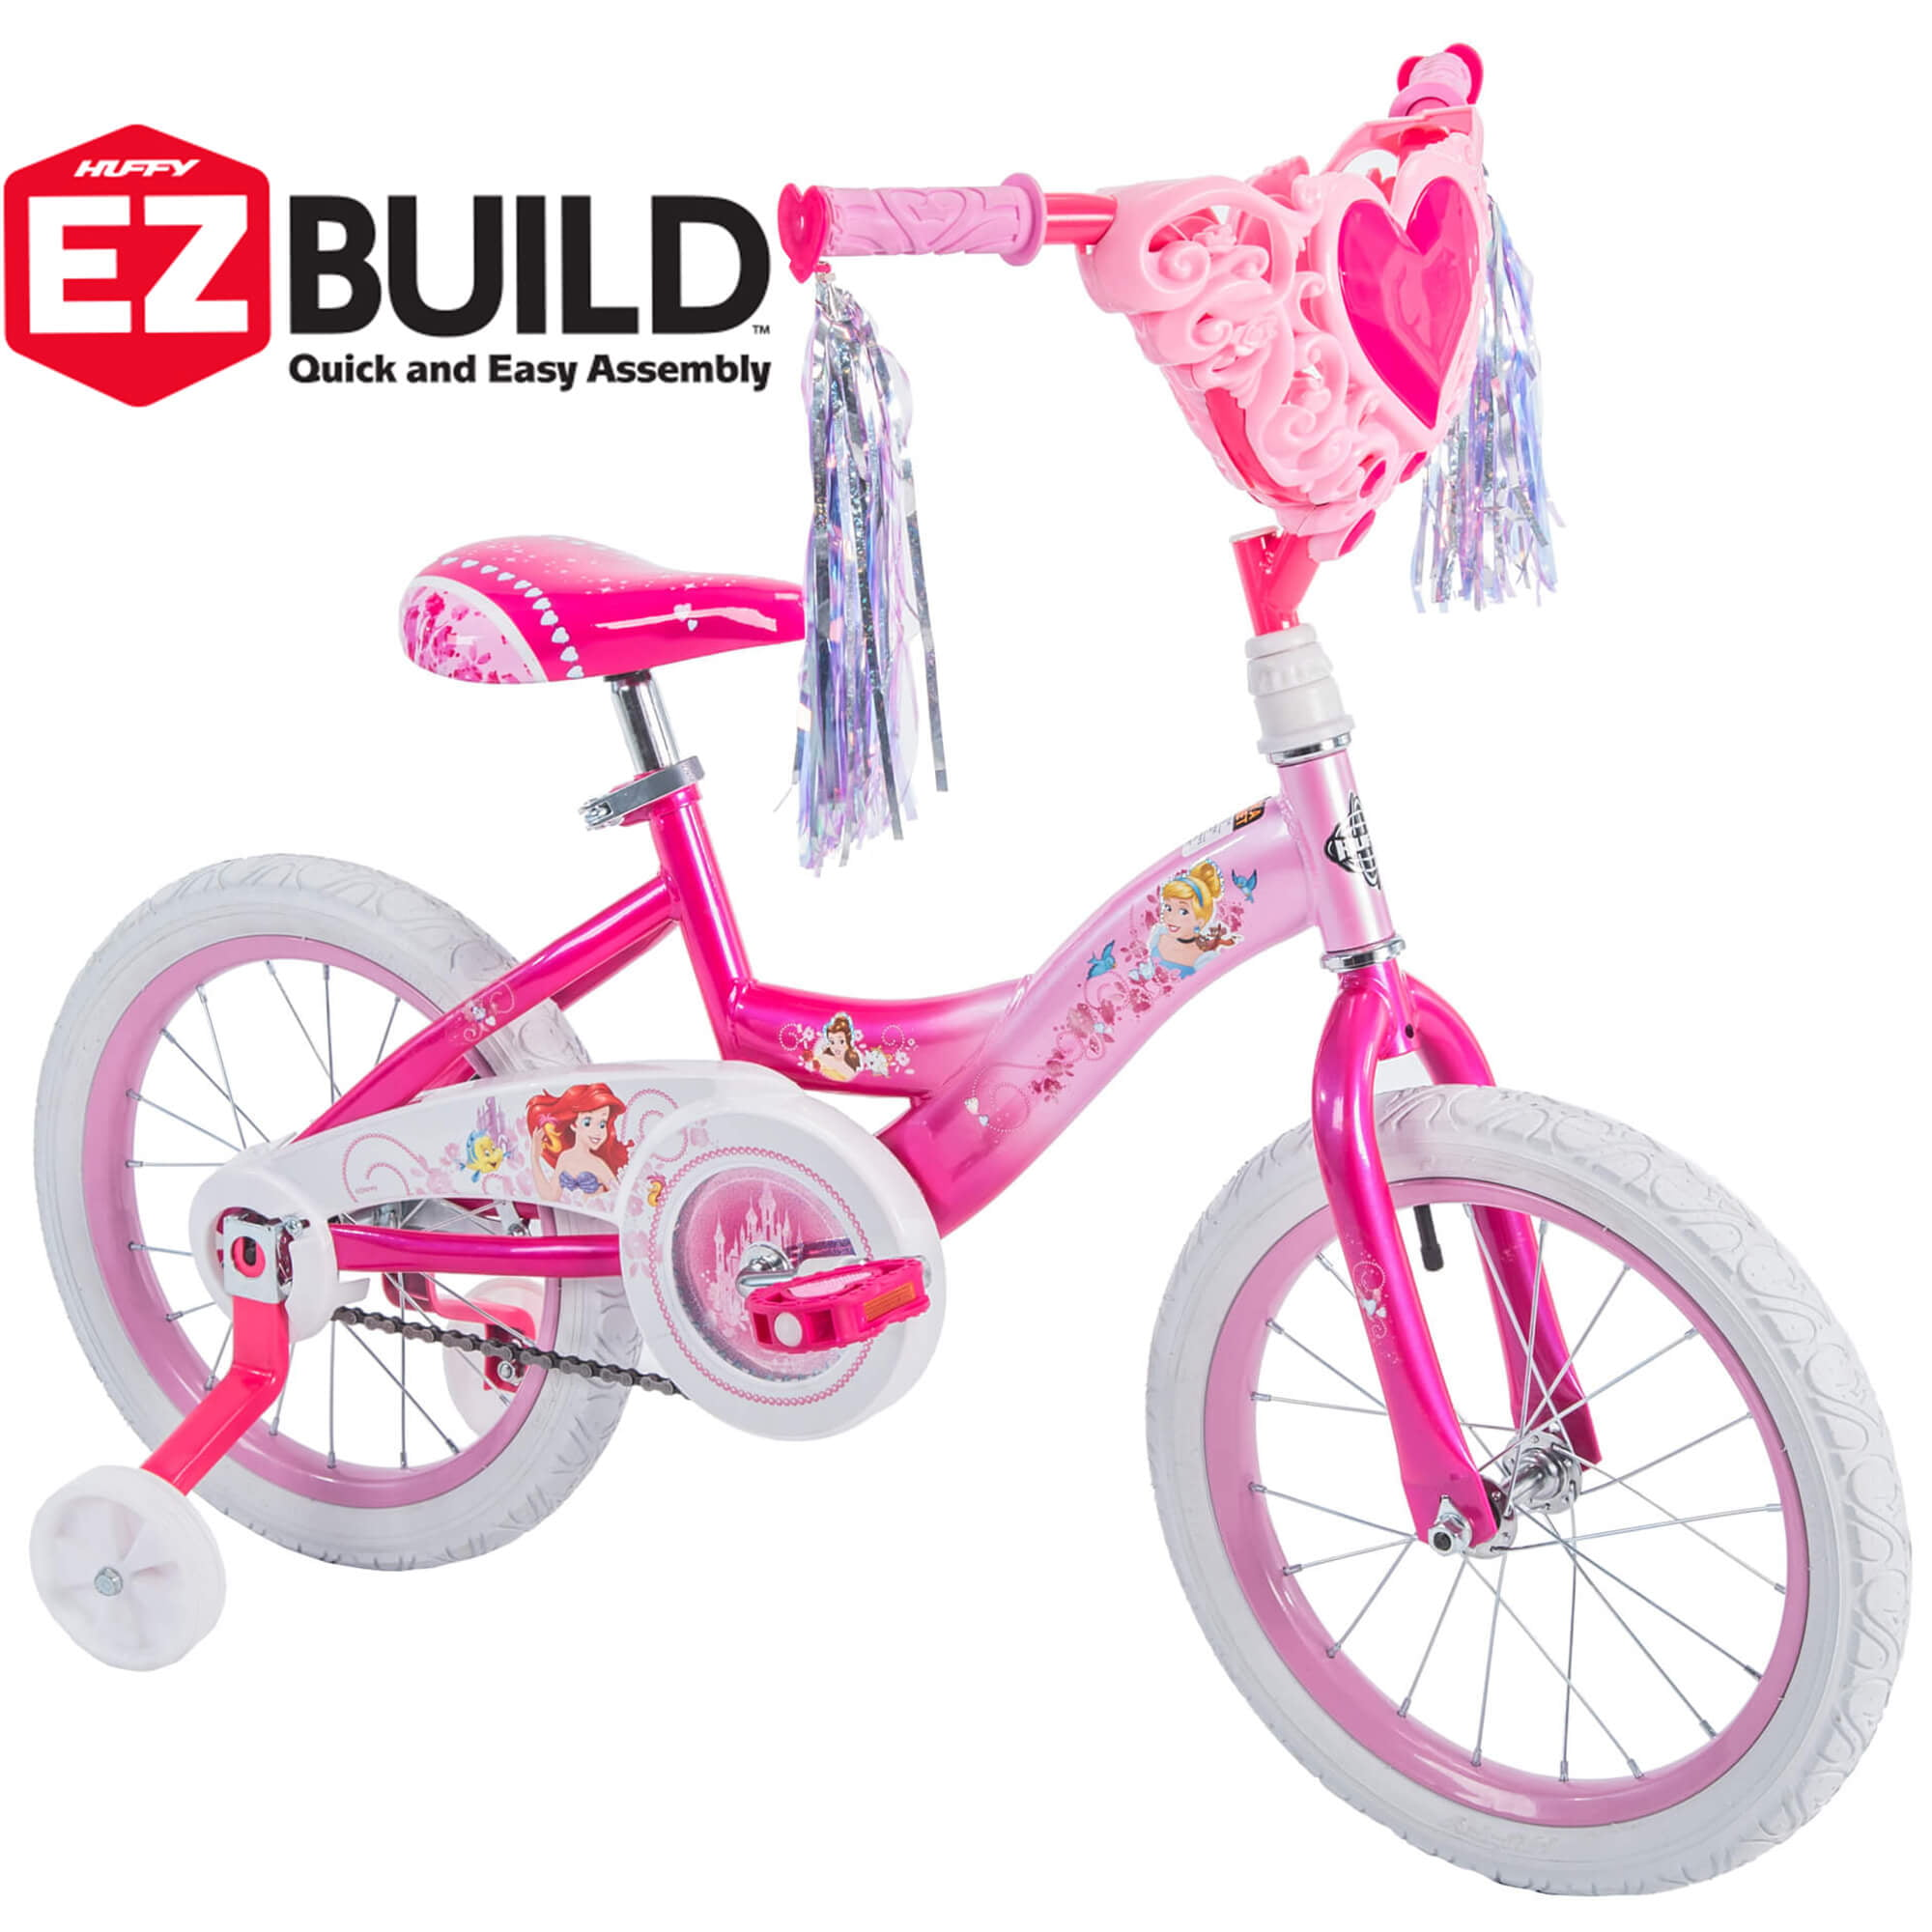 "Disney Princess 16"" Girls' EZ Build Pink Bike, by Huffy by Huffy"